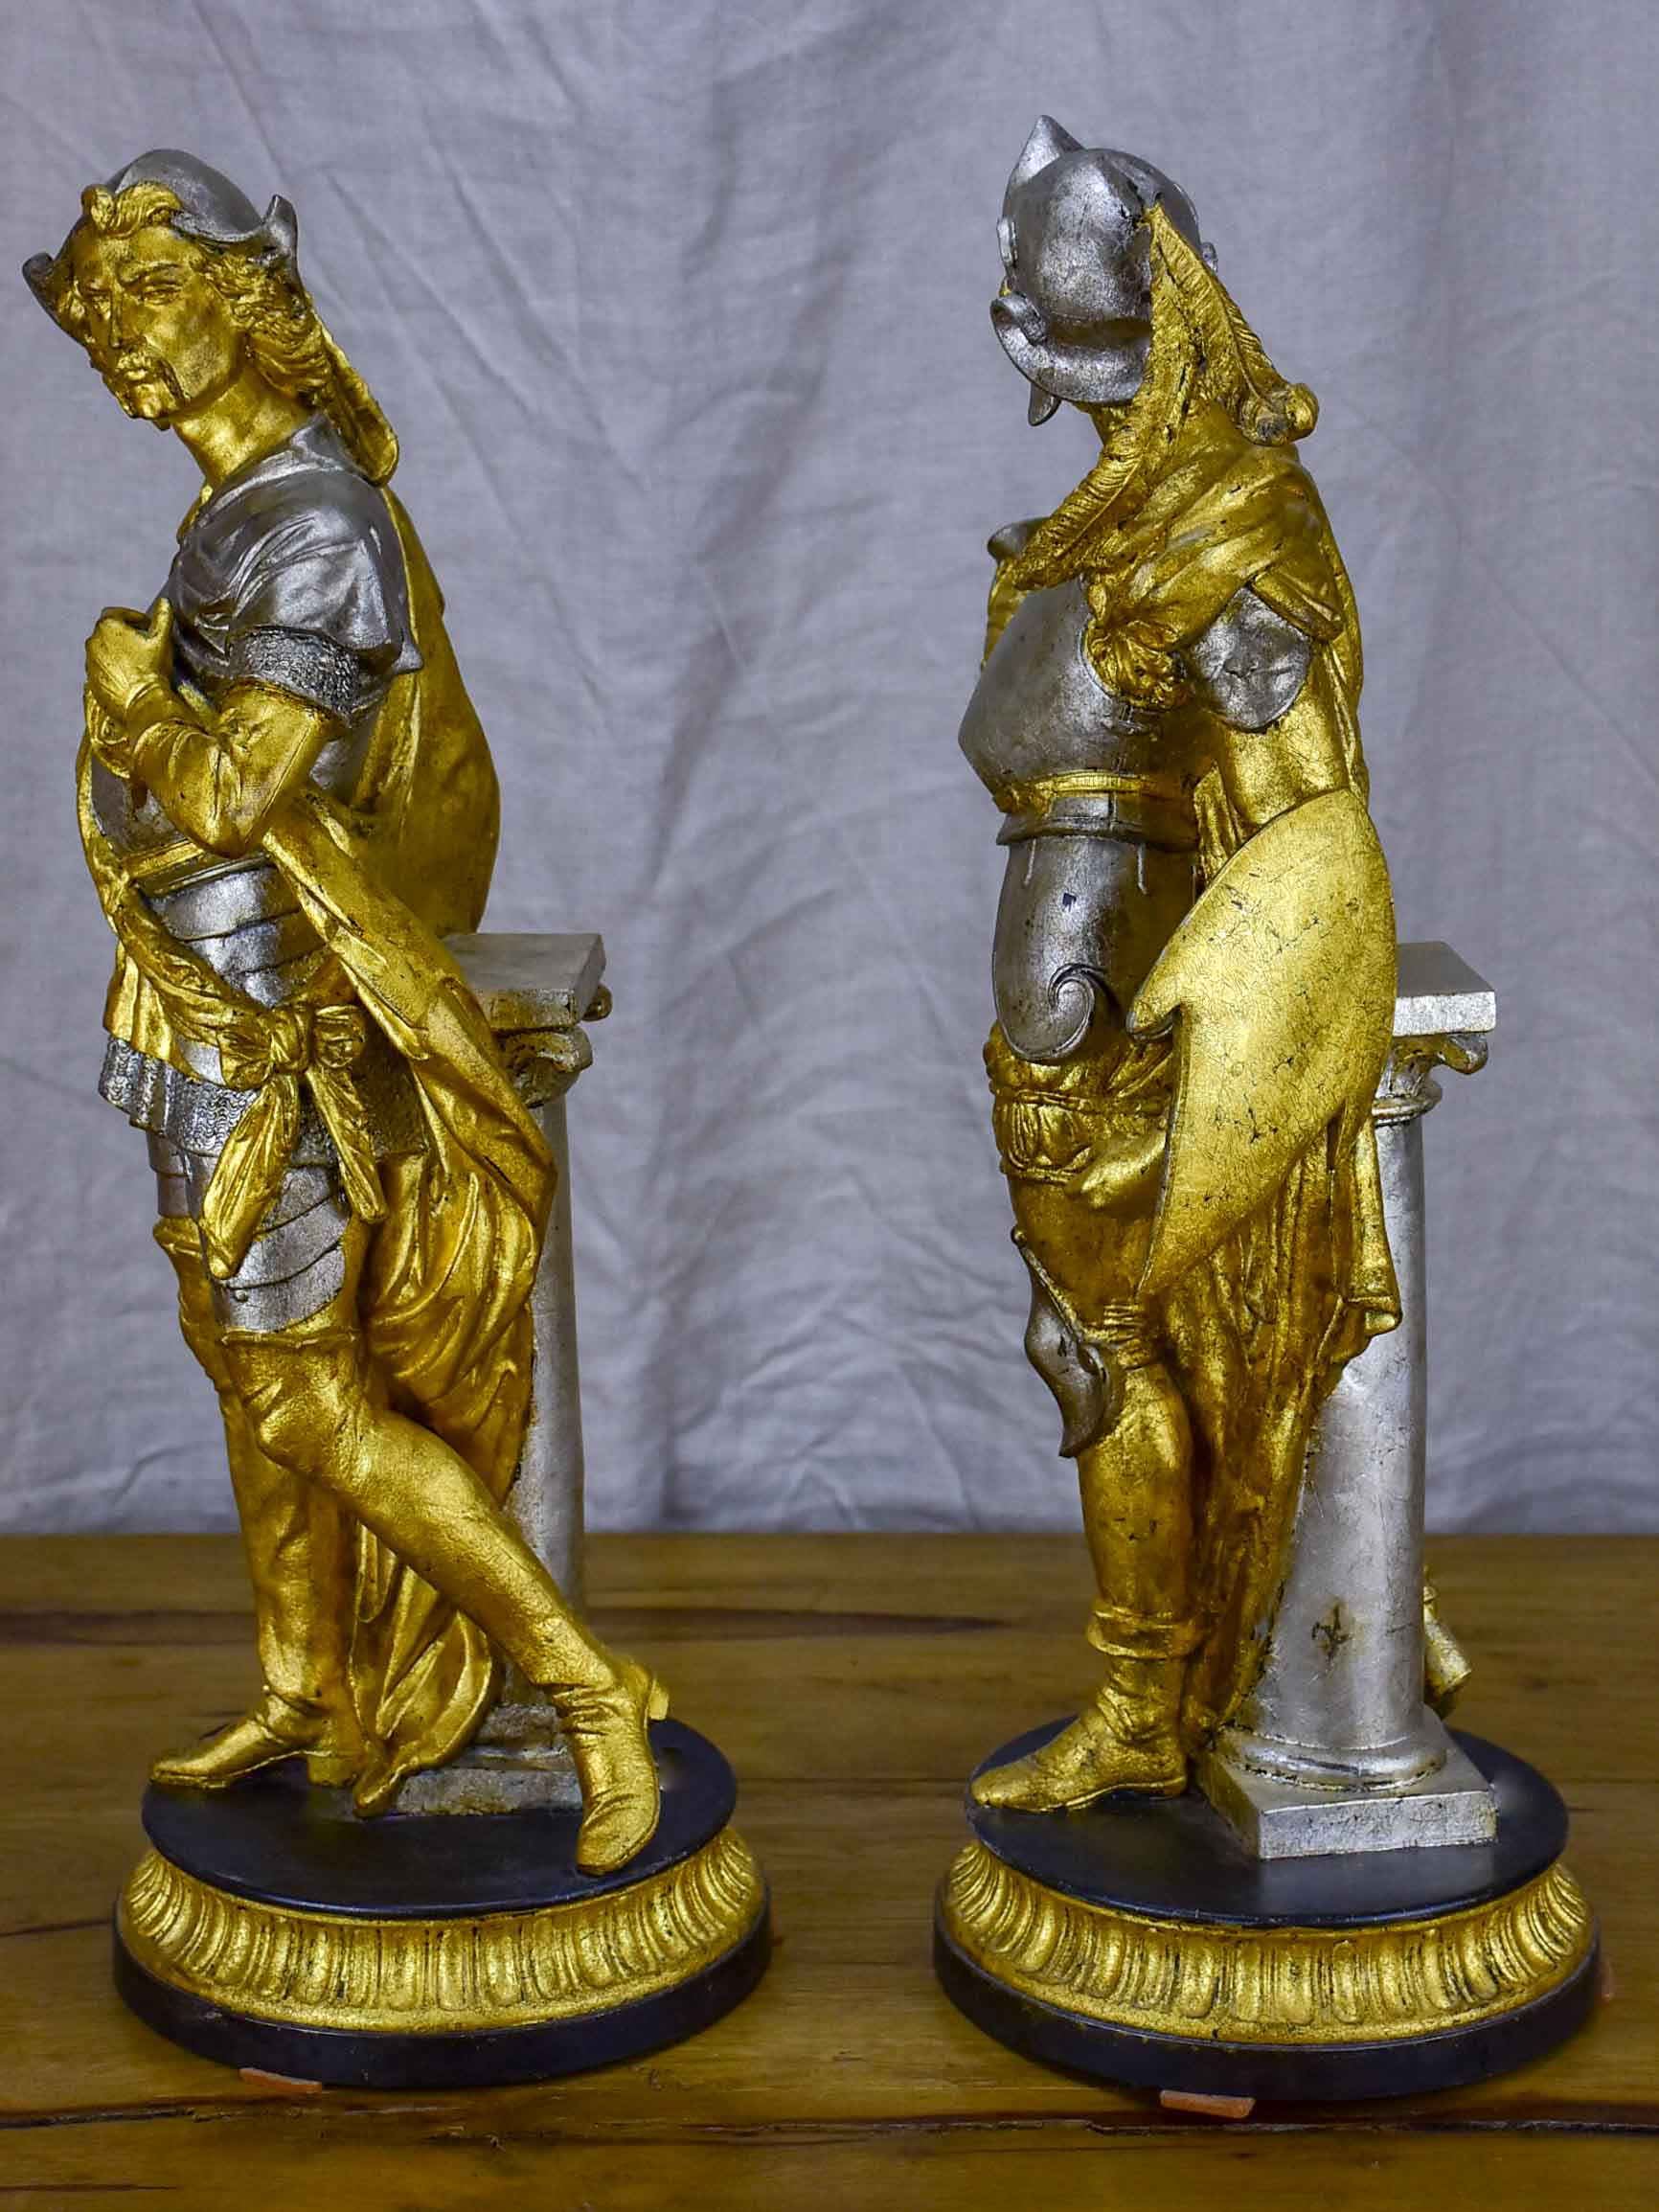 Pair of late 19th Century silver and gold statues